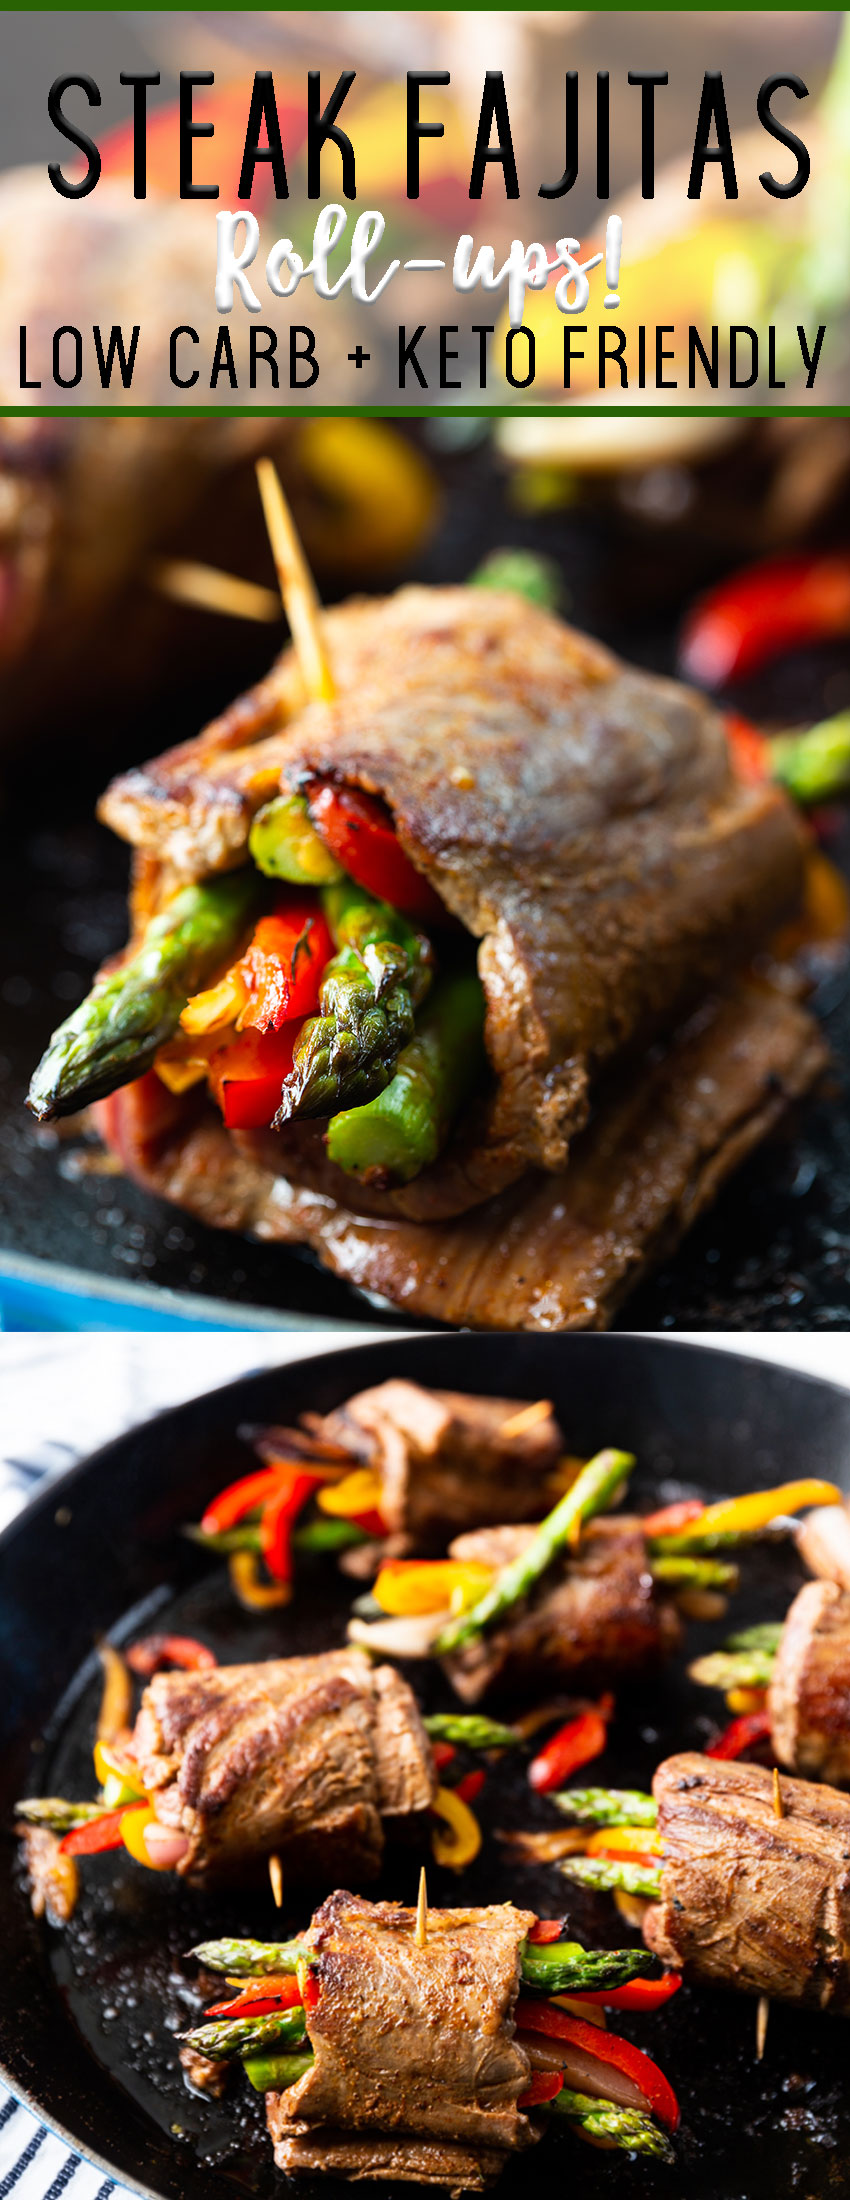 Steak Fajitas roll ups are low carb and keto friendly, packed with flavor, and so easy to make. Whenever I make these they disappear so quickly.